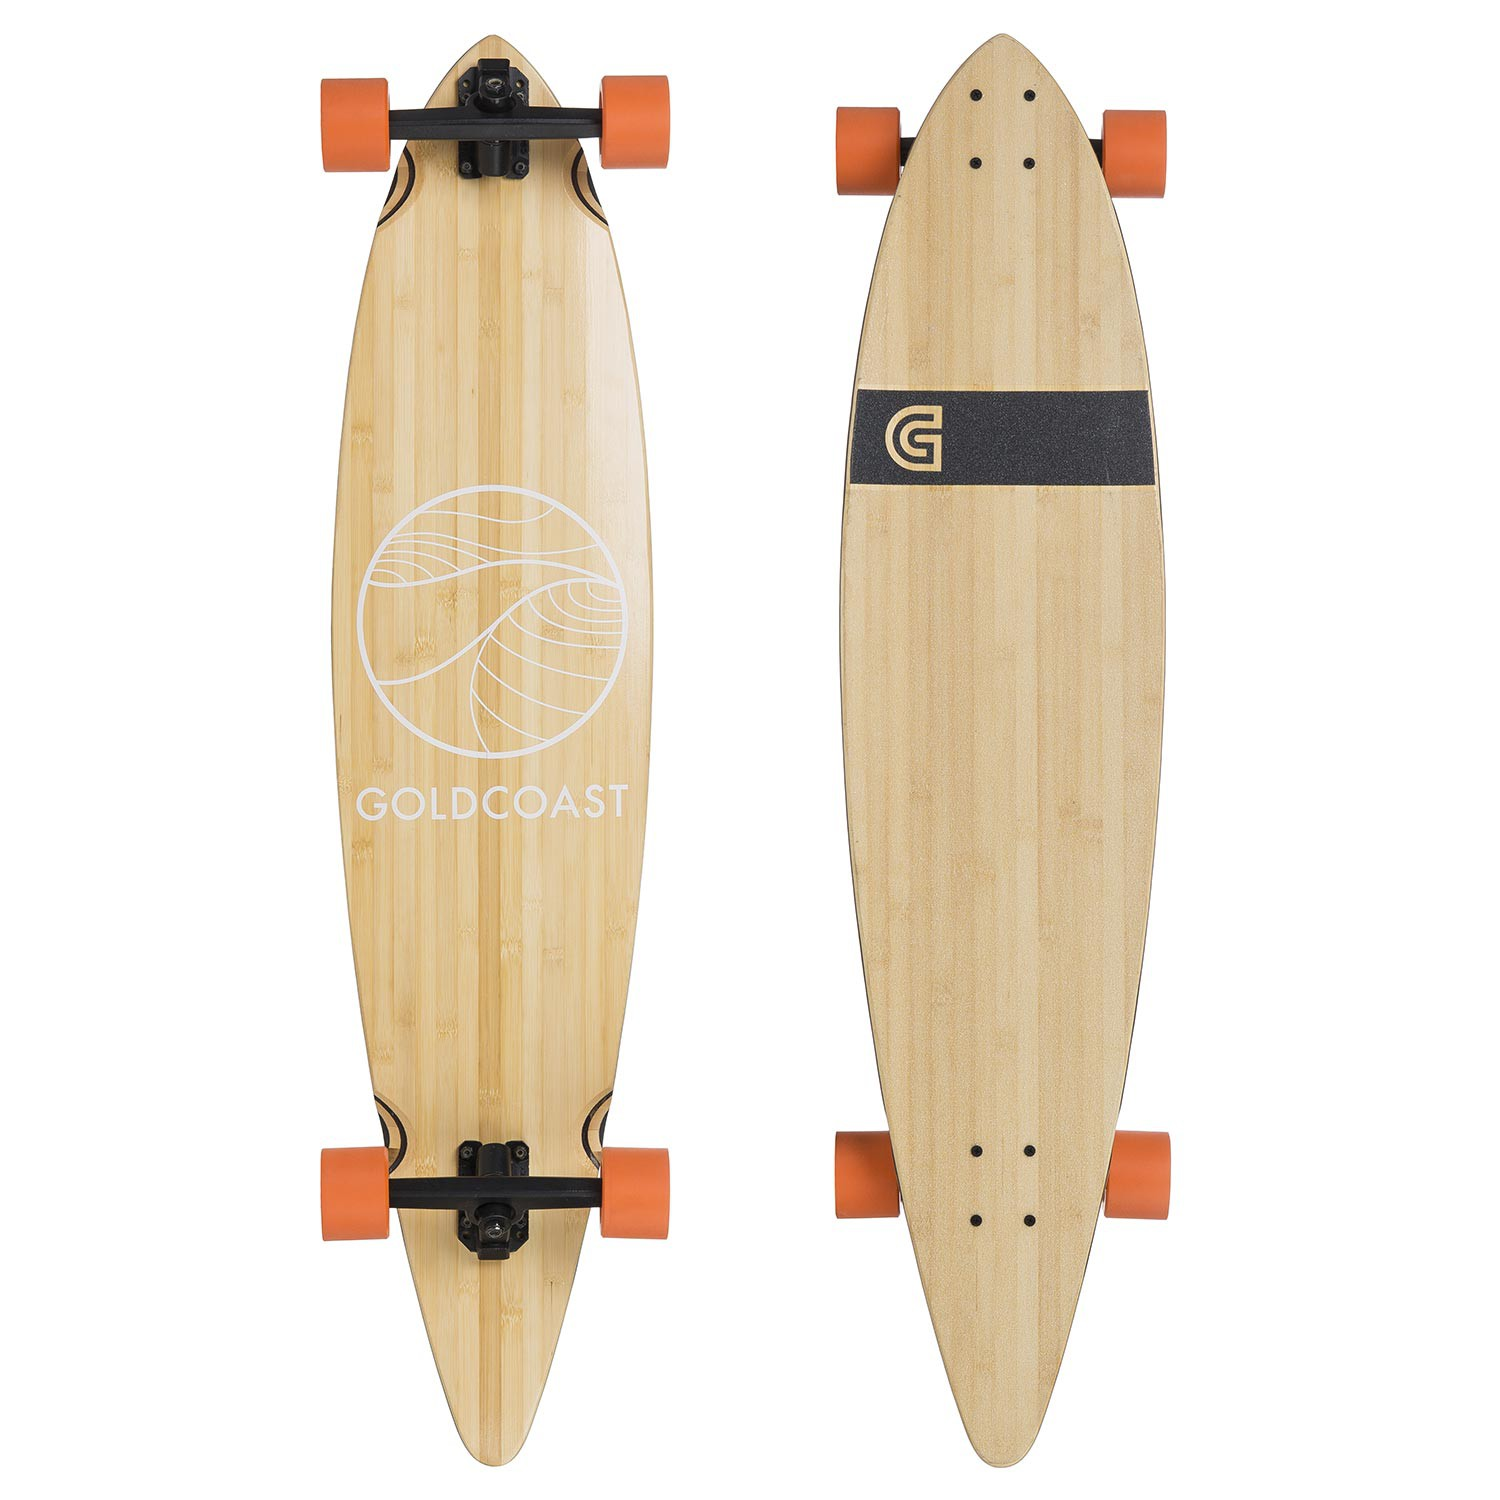 Longboard Goldcoast Classic Pintail bamboo